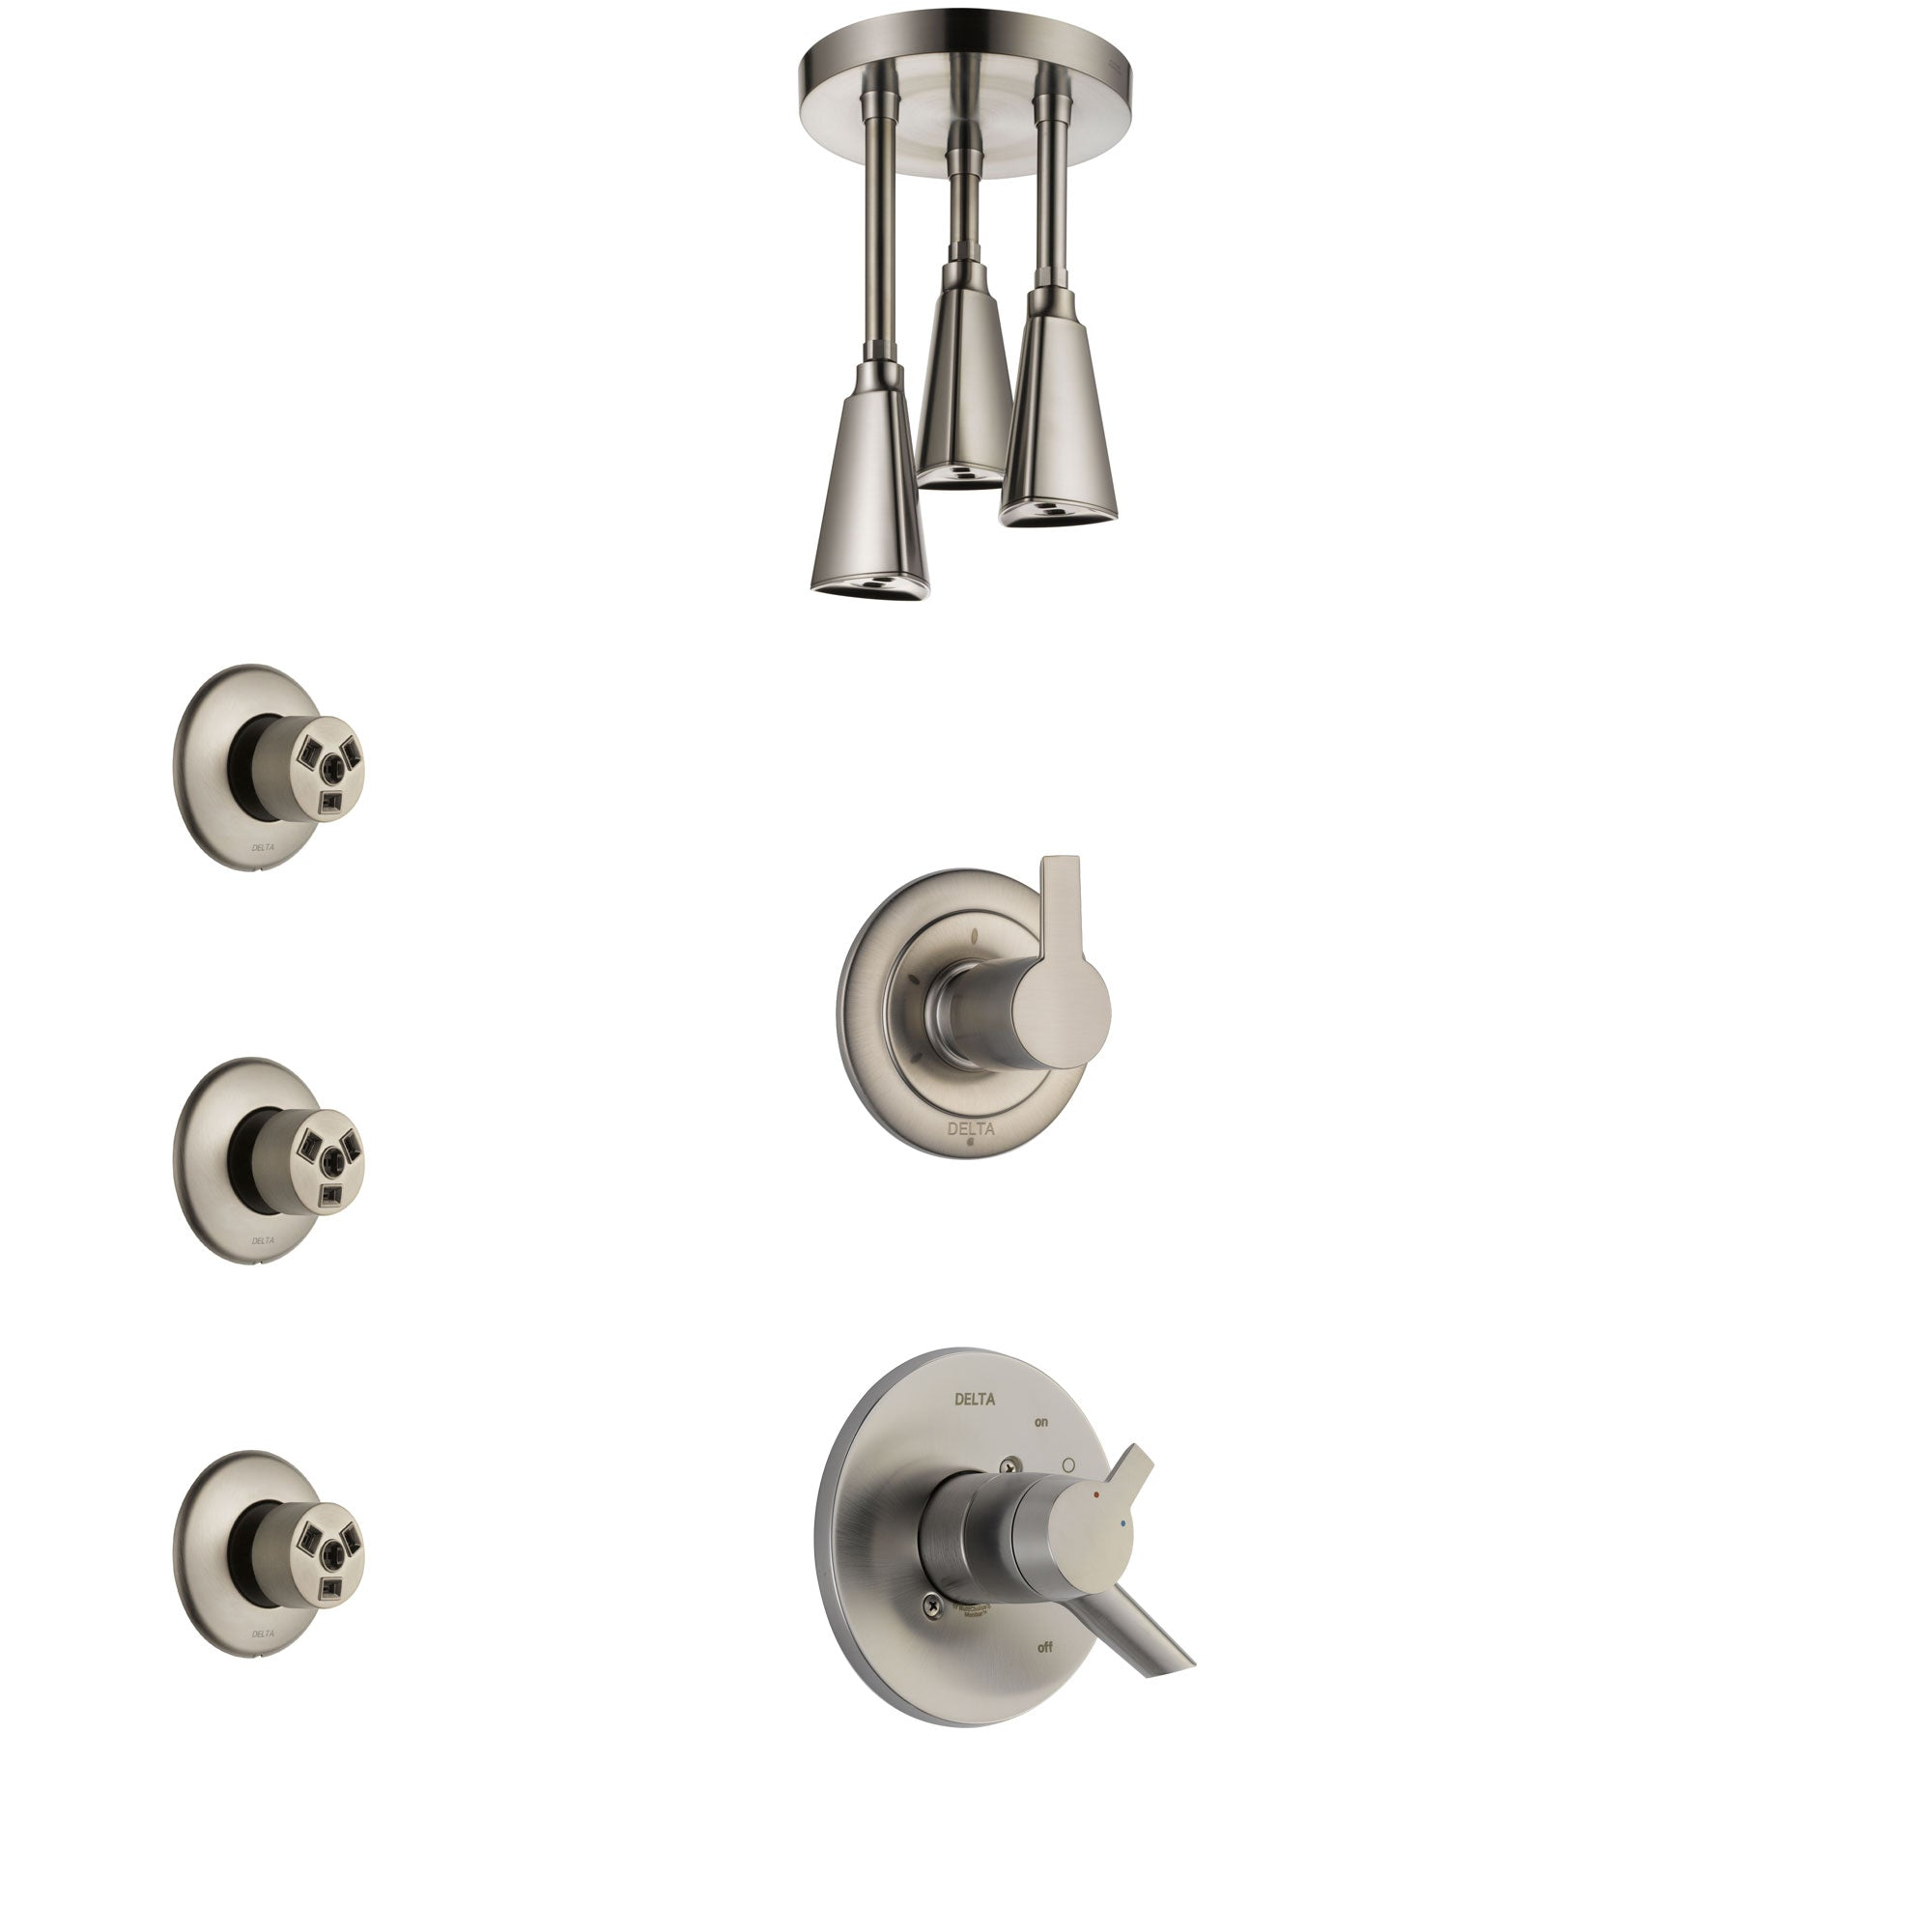 Delta Compel Stainless Steel Finish Shower System with Dual Control Handle, 3-Setting Diverter, Ceiling Mount Showerhead, and 3 Body Sprays SS1761SS5